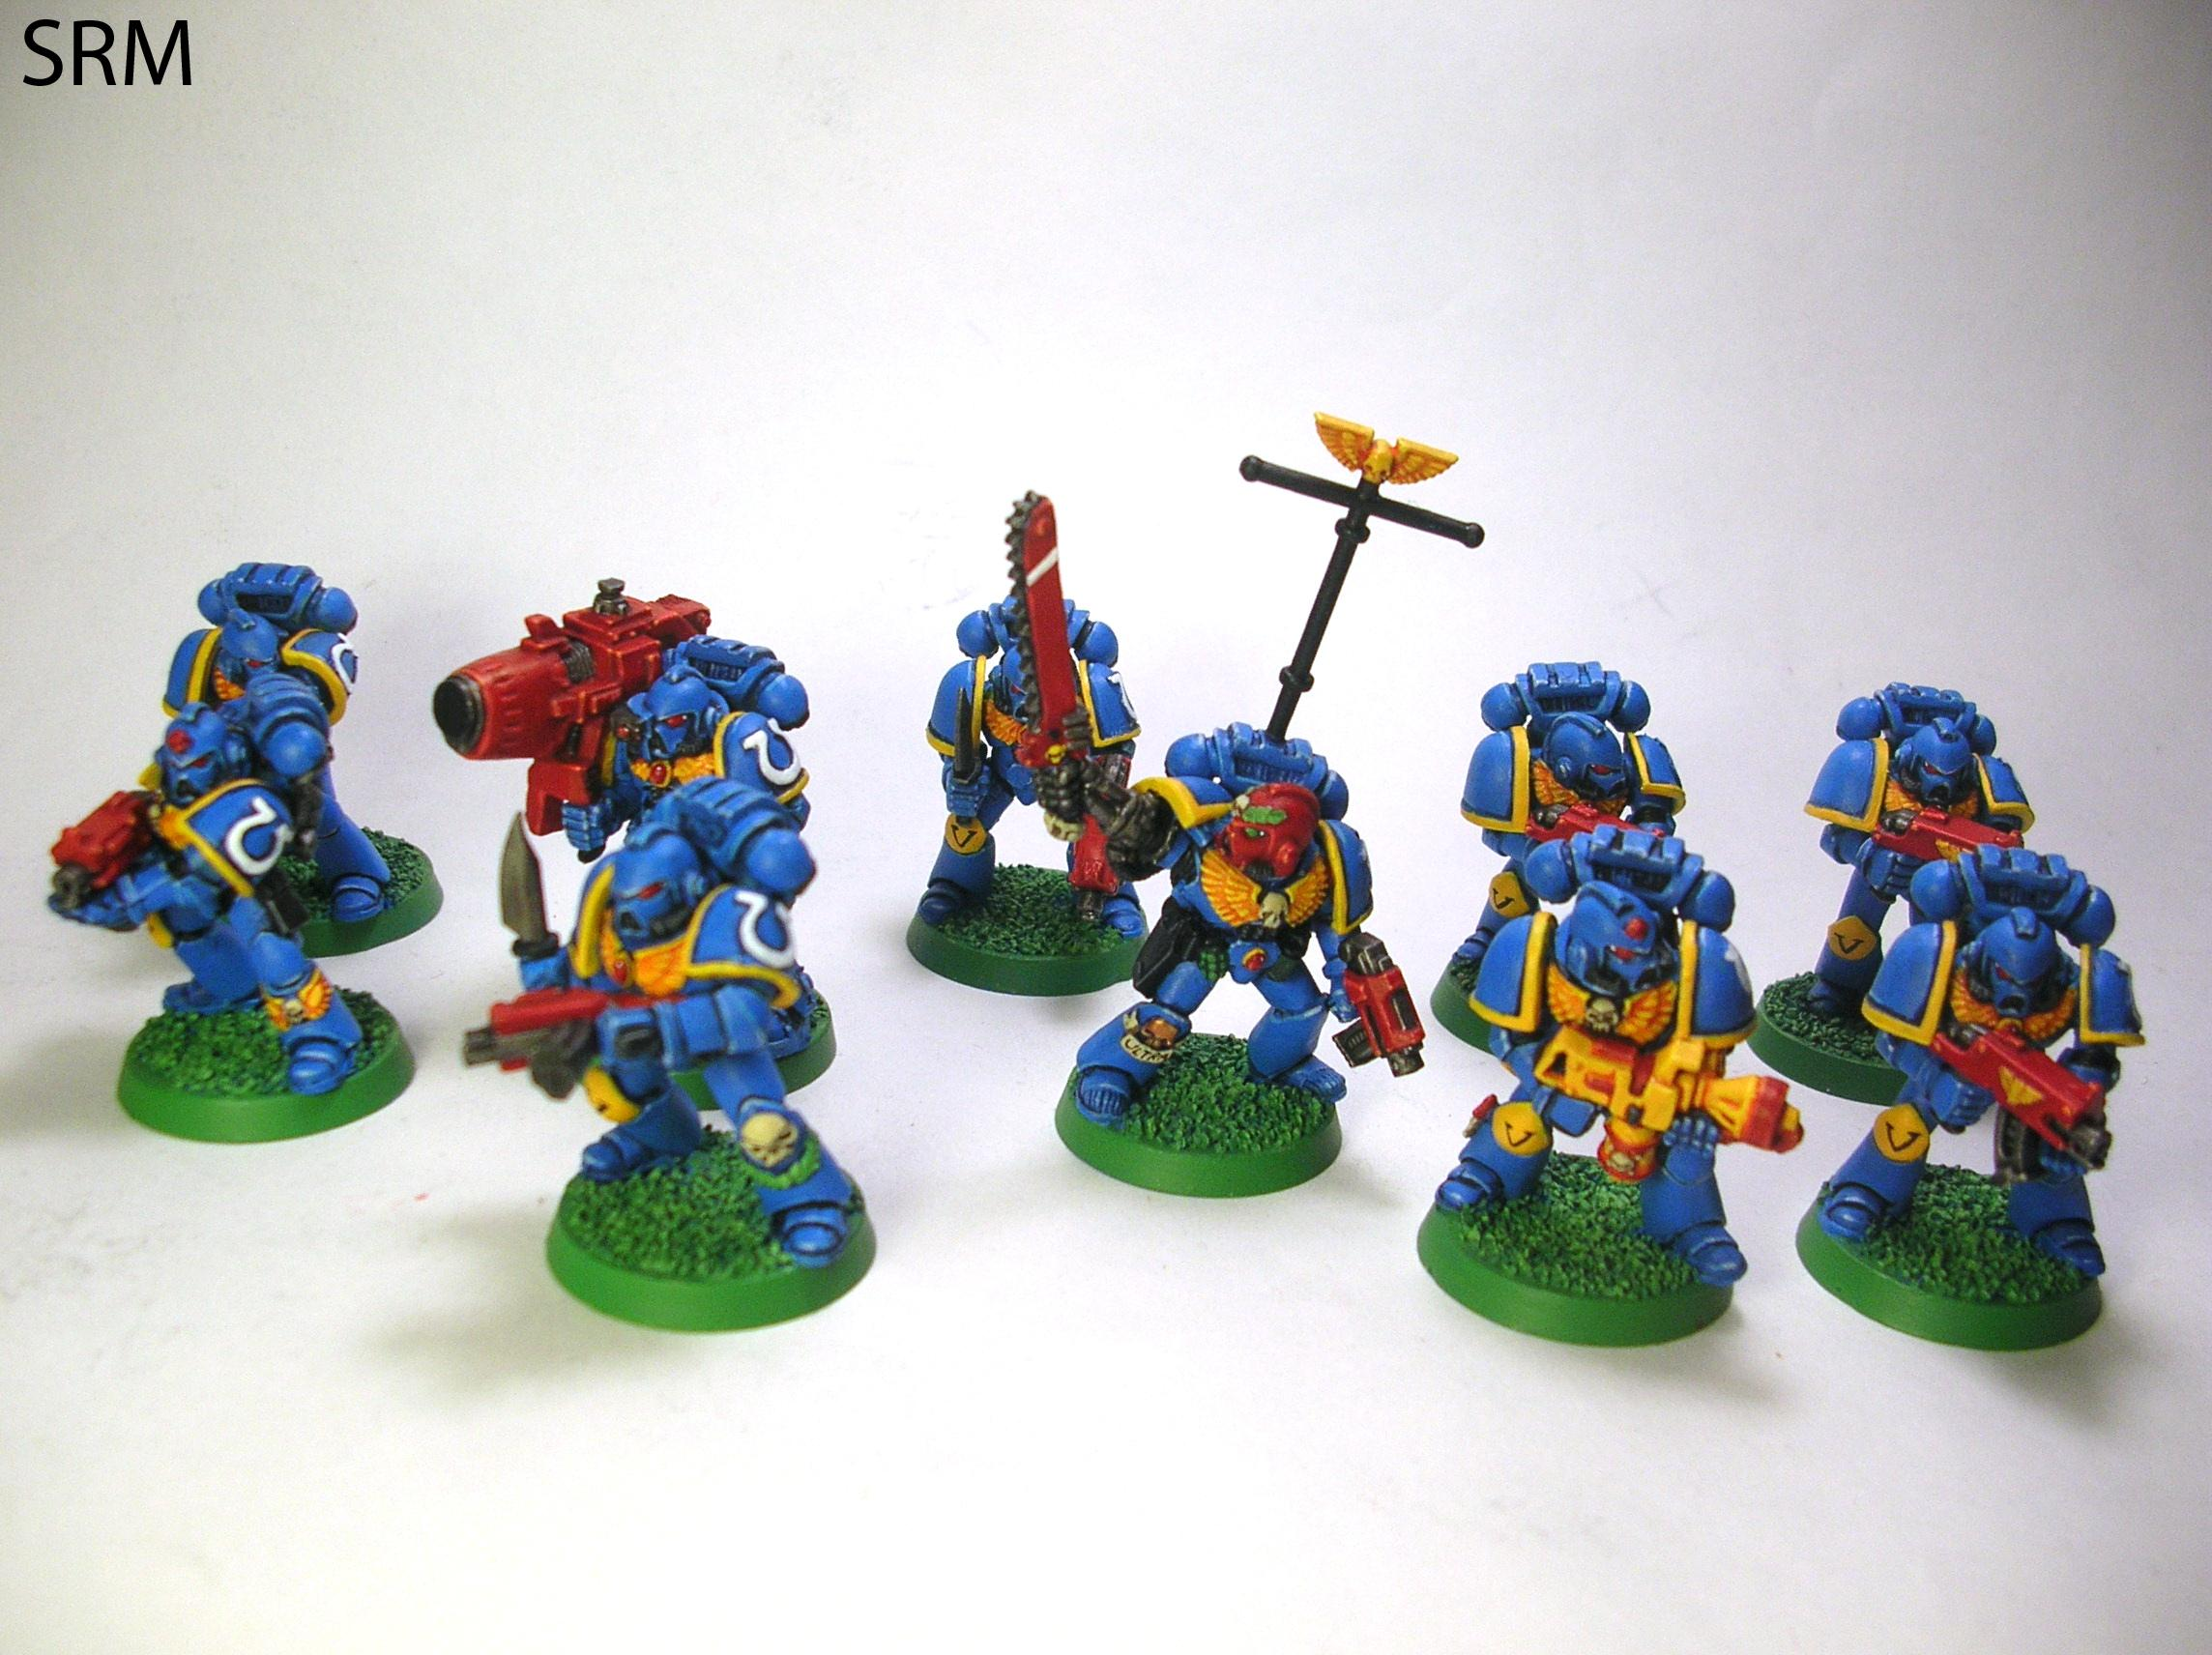 2nd Edition, Brother Srm, Old School, Space Marines, Ultramarines, Warhammer 40,000